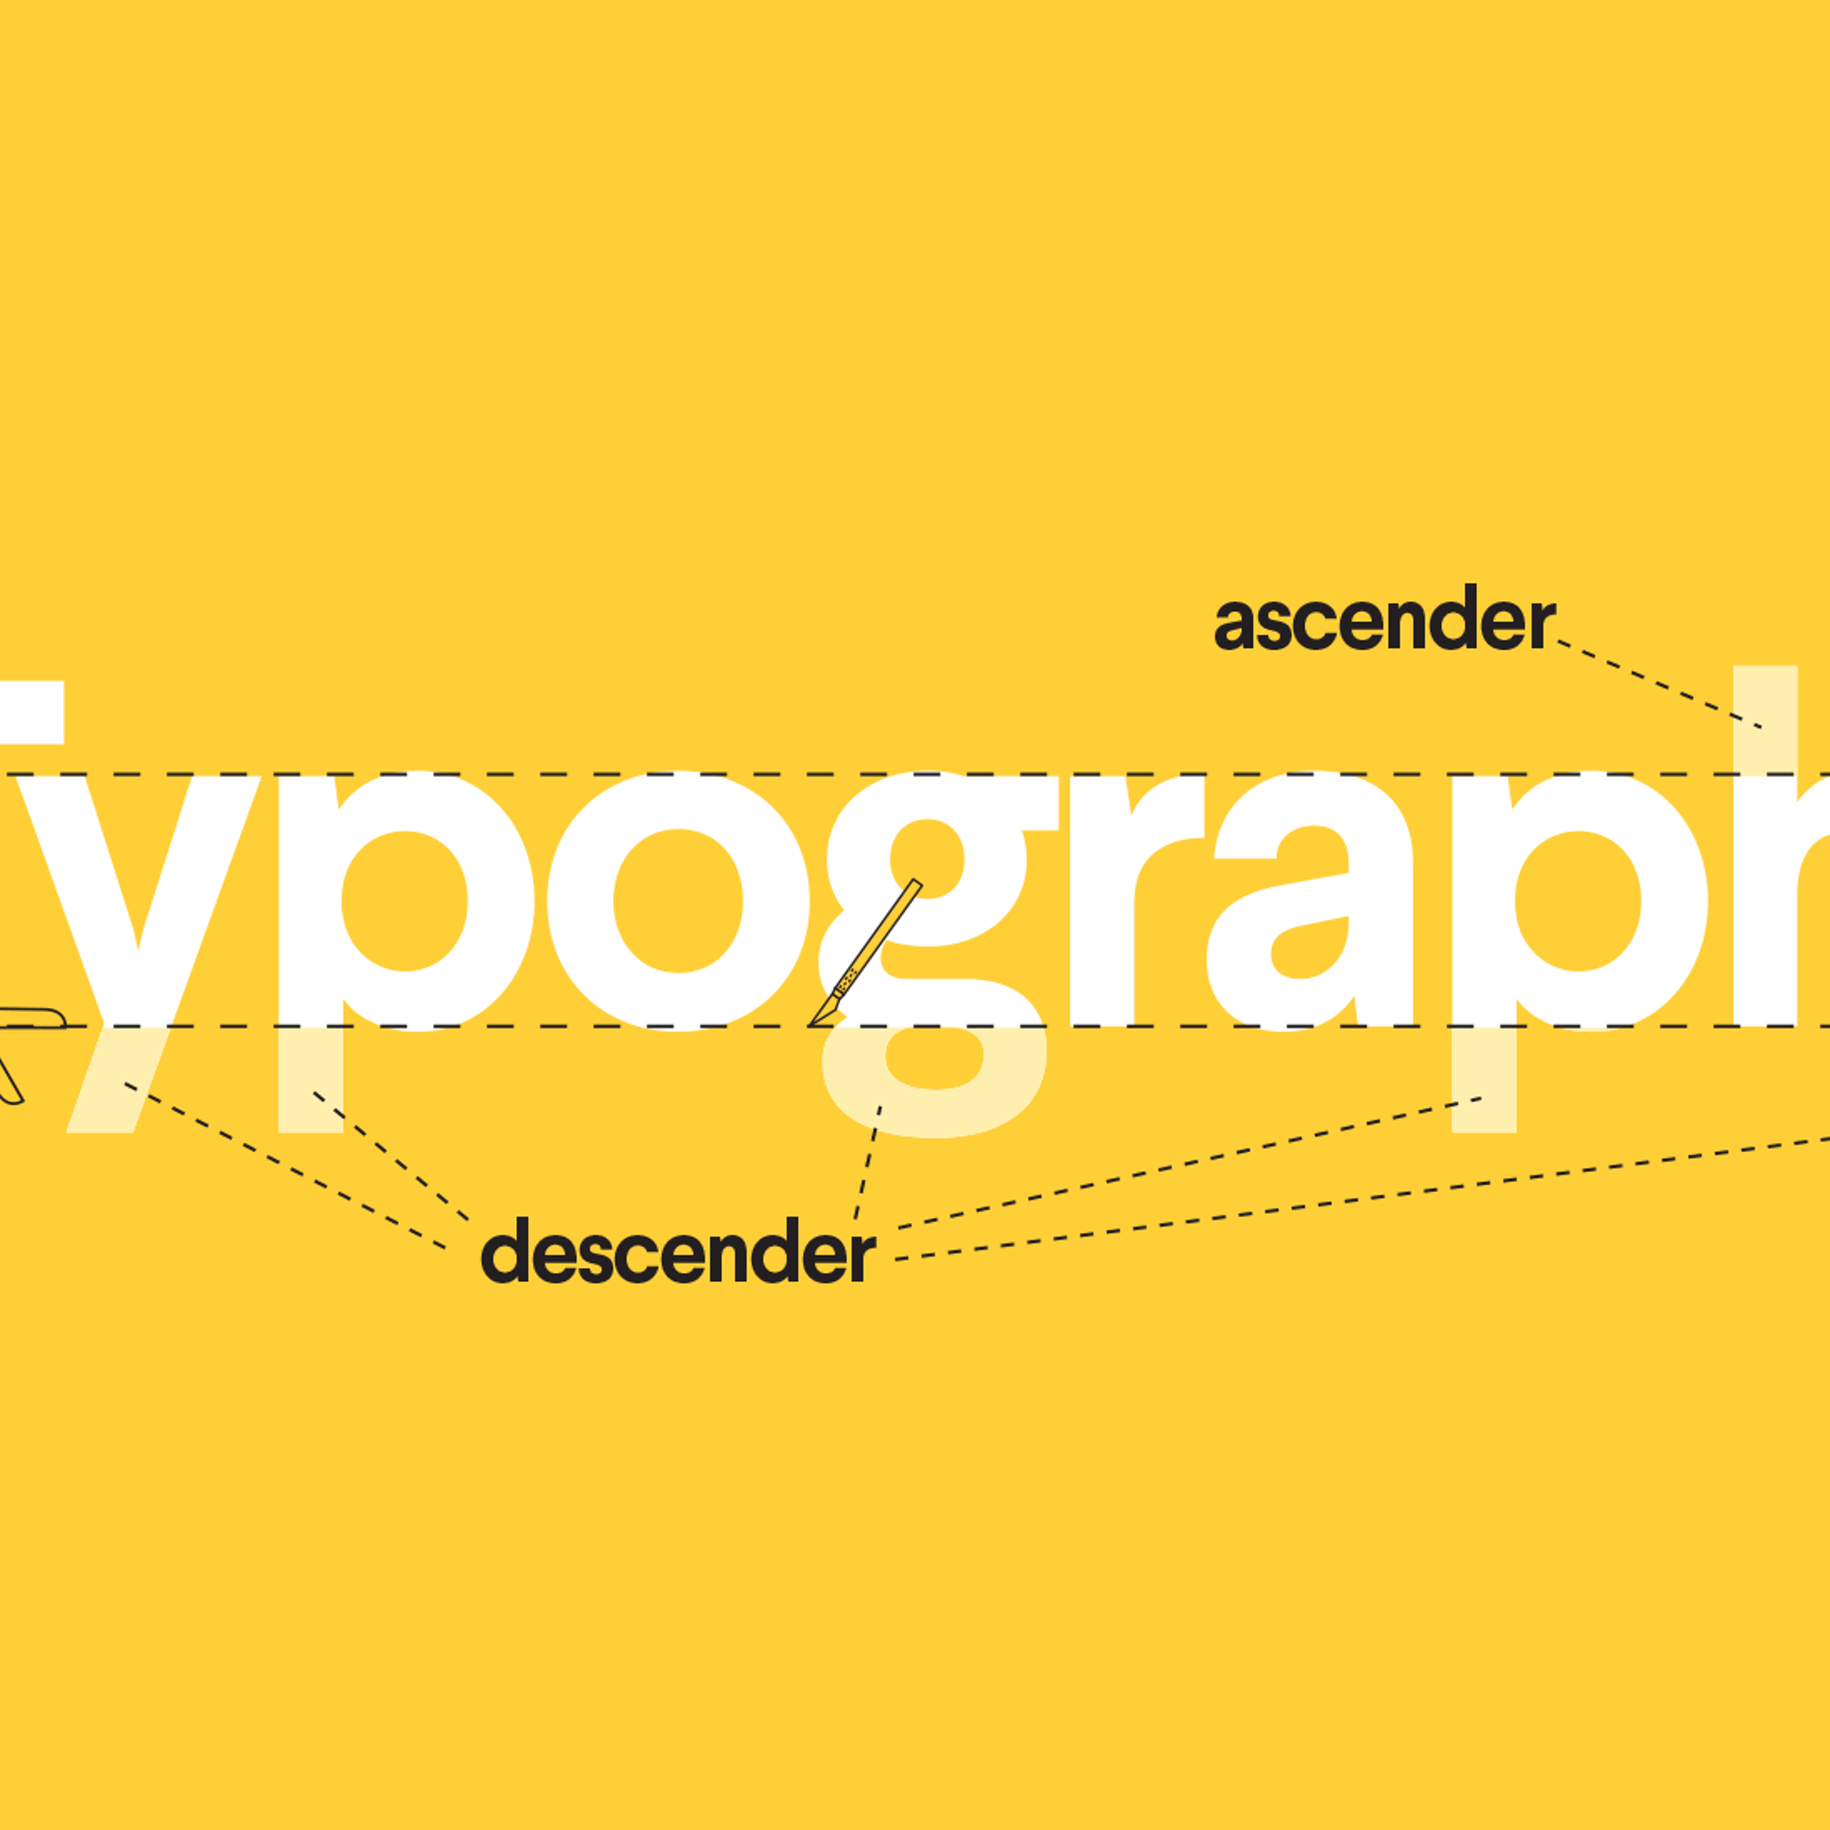 99 descriptive design words you should know - 99designs